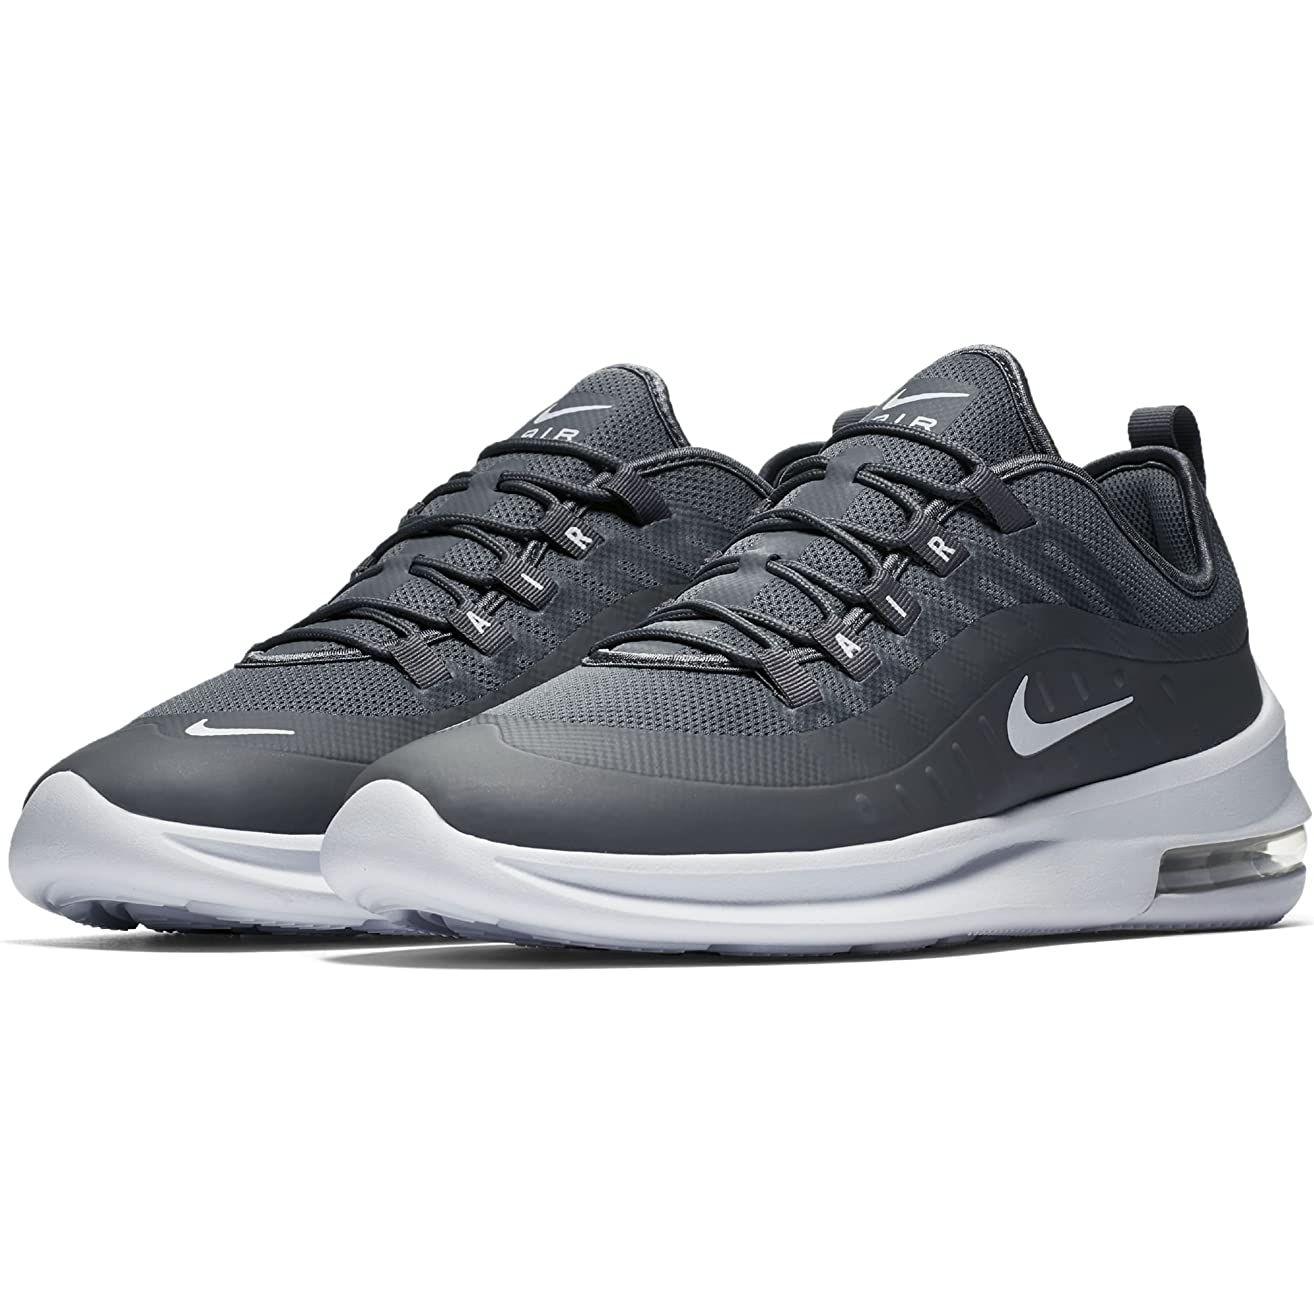 Nike Men's Air Max Axis Cool Grey/White Size 11 M US